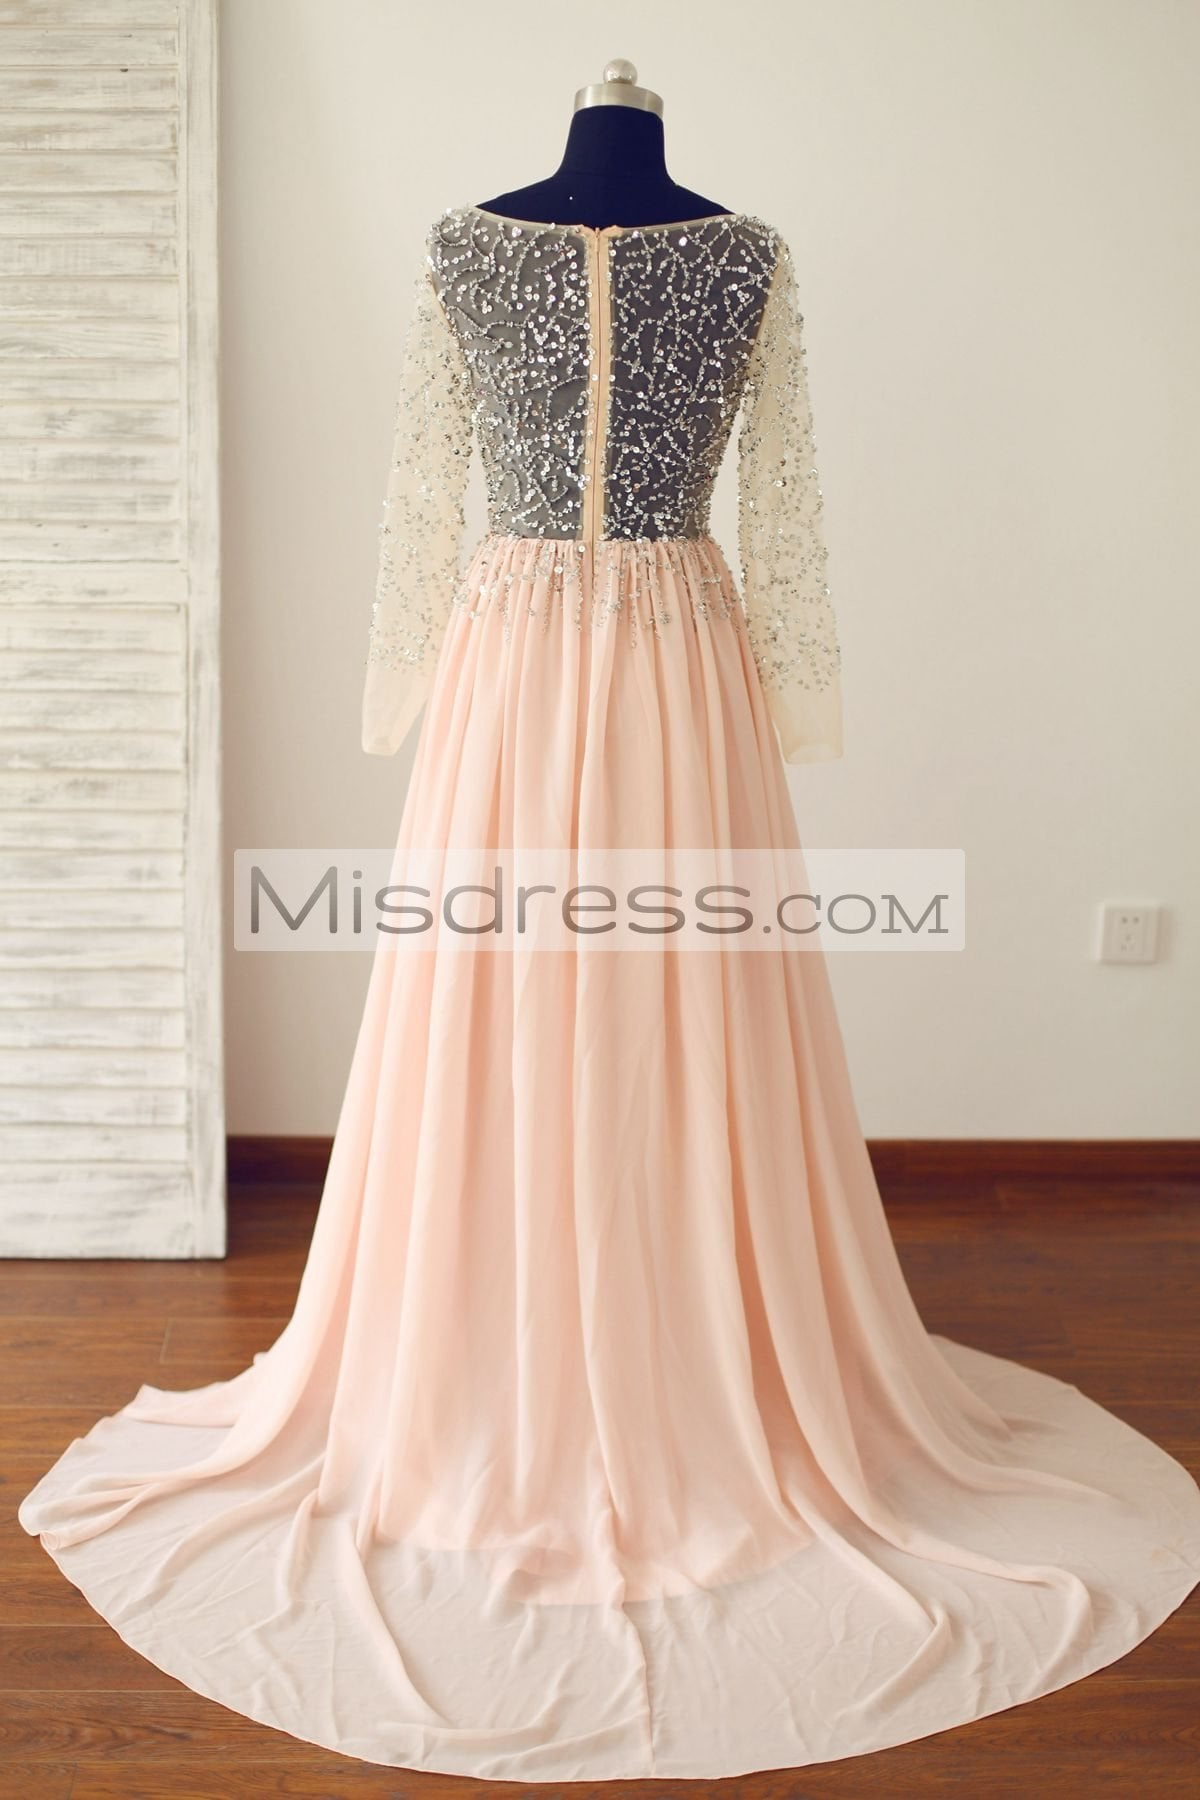 Sheer Long Sleeves Sexy Blush Pink Tulle Chiffon Prom Dress (long train)